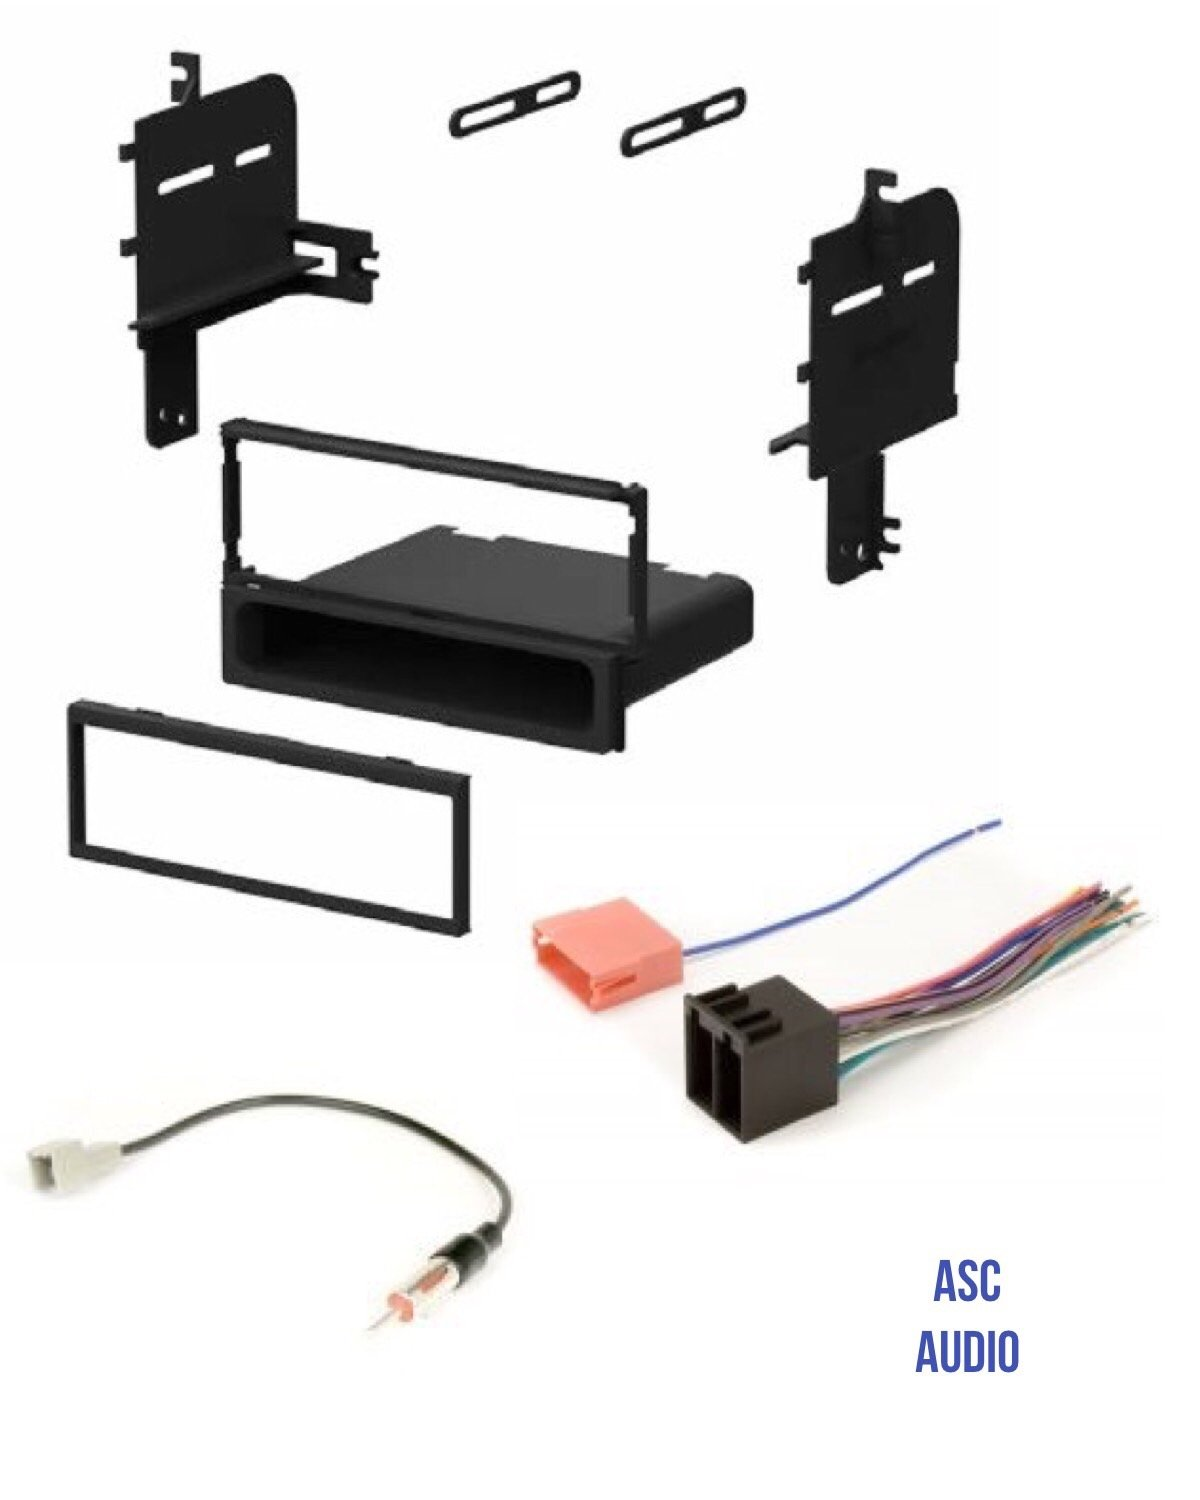 Asc Car Stereo Radio Install Dash Kit Wire Harness And Metra Wiring Installation Tools Antenna Adapter For Installing An Aftermarket Single Din 2009 2010 2011